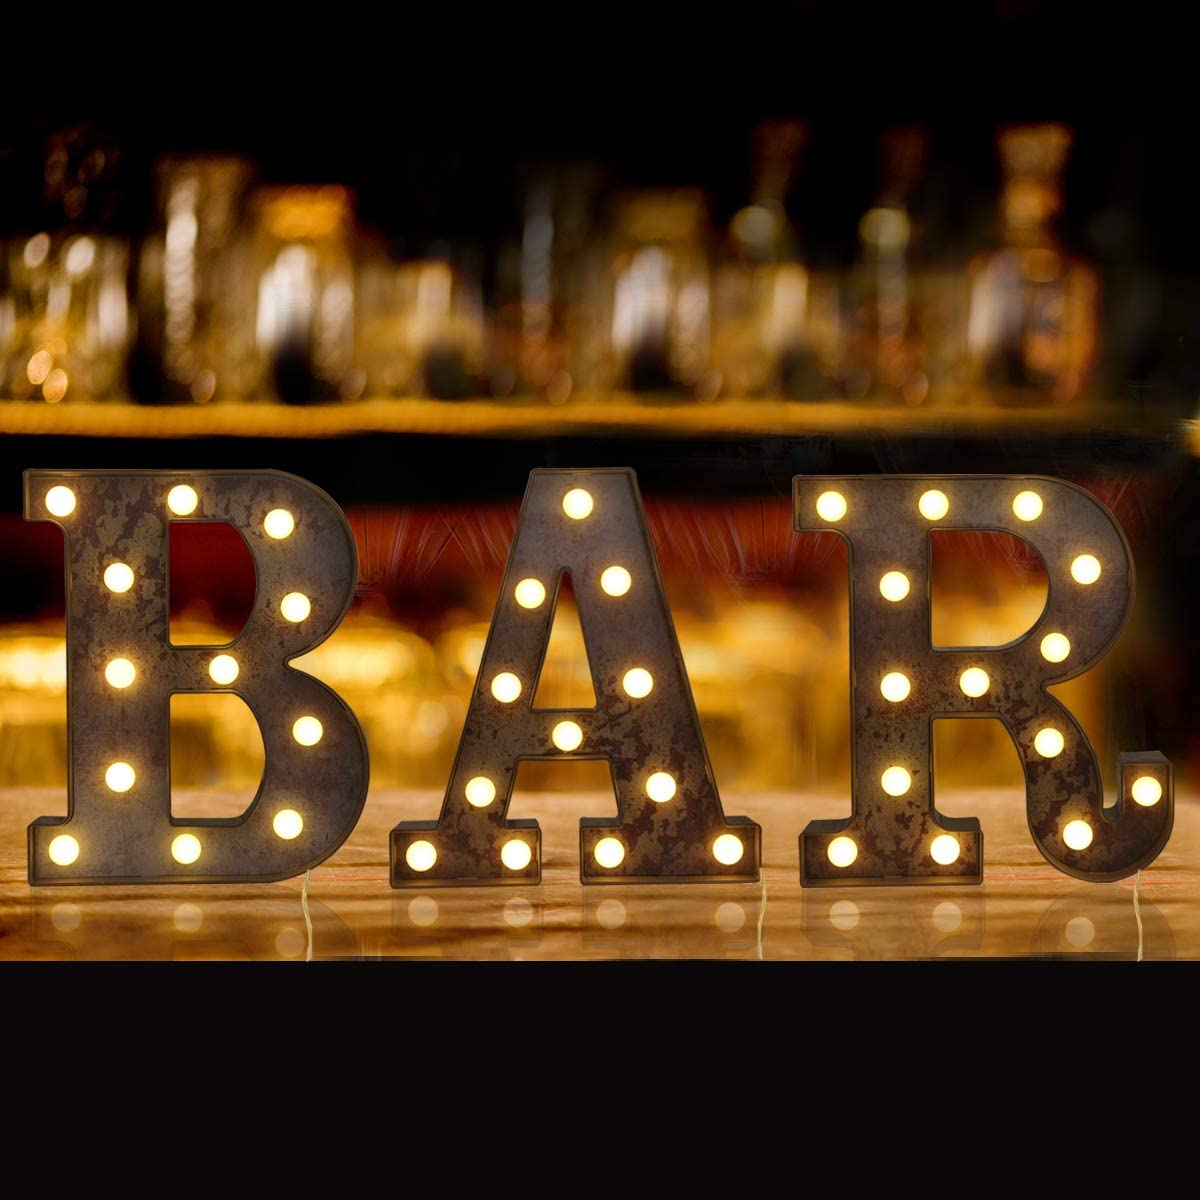 Elnsivo Light Up Vintage Bar Sign with Lights, Illuminated Industrial Style Lighted Bar Cart Marquee Sign Letters Night Light for Bar, Pub, Bistro, Party, Wall Decor(Rust Effect BAR)